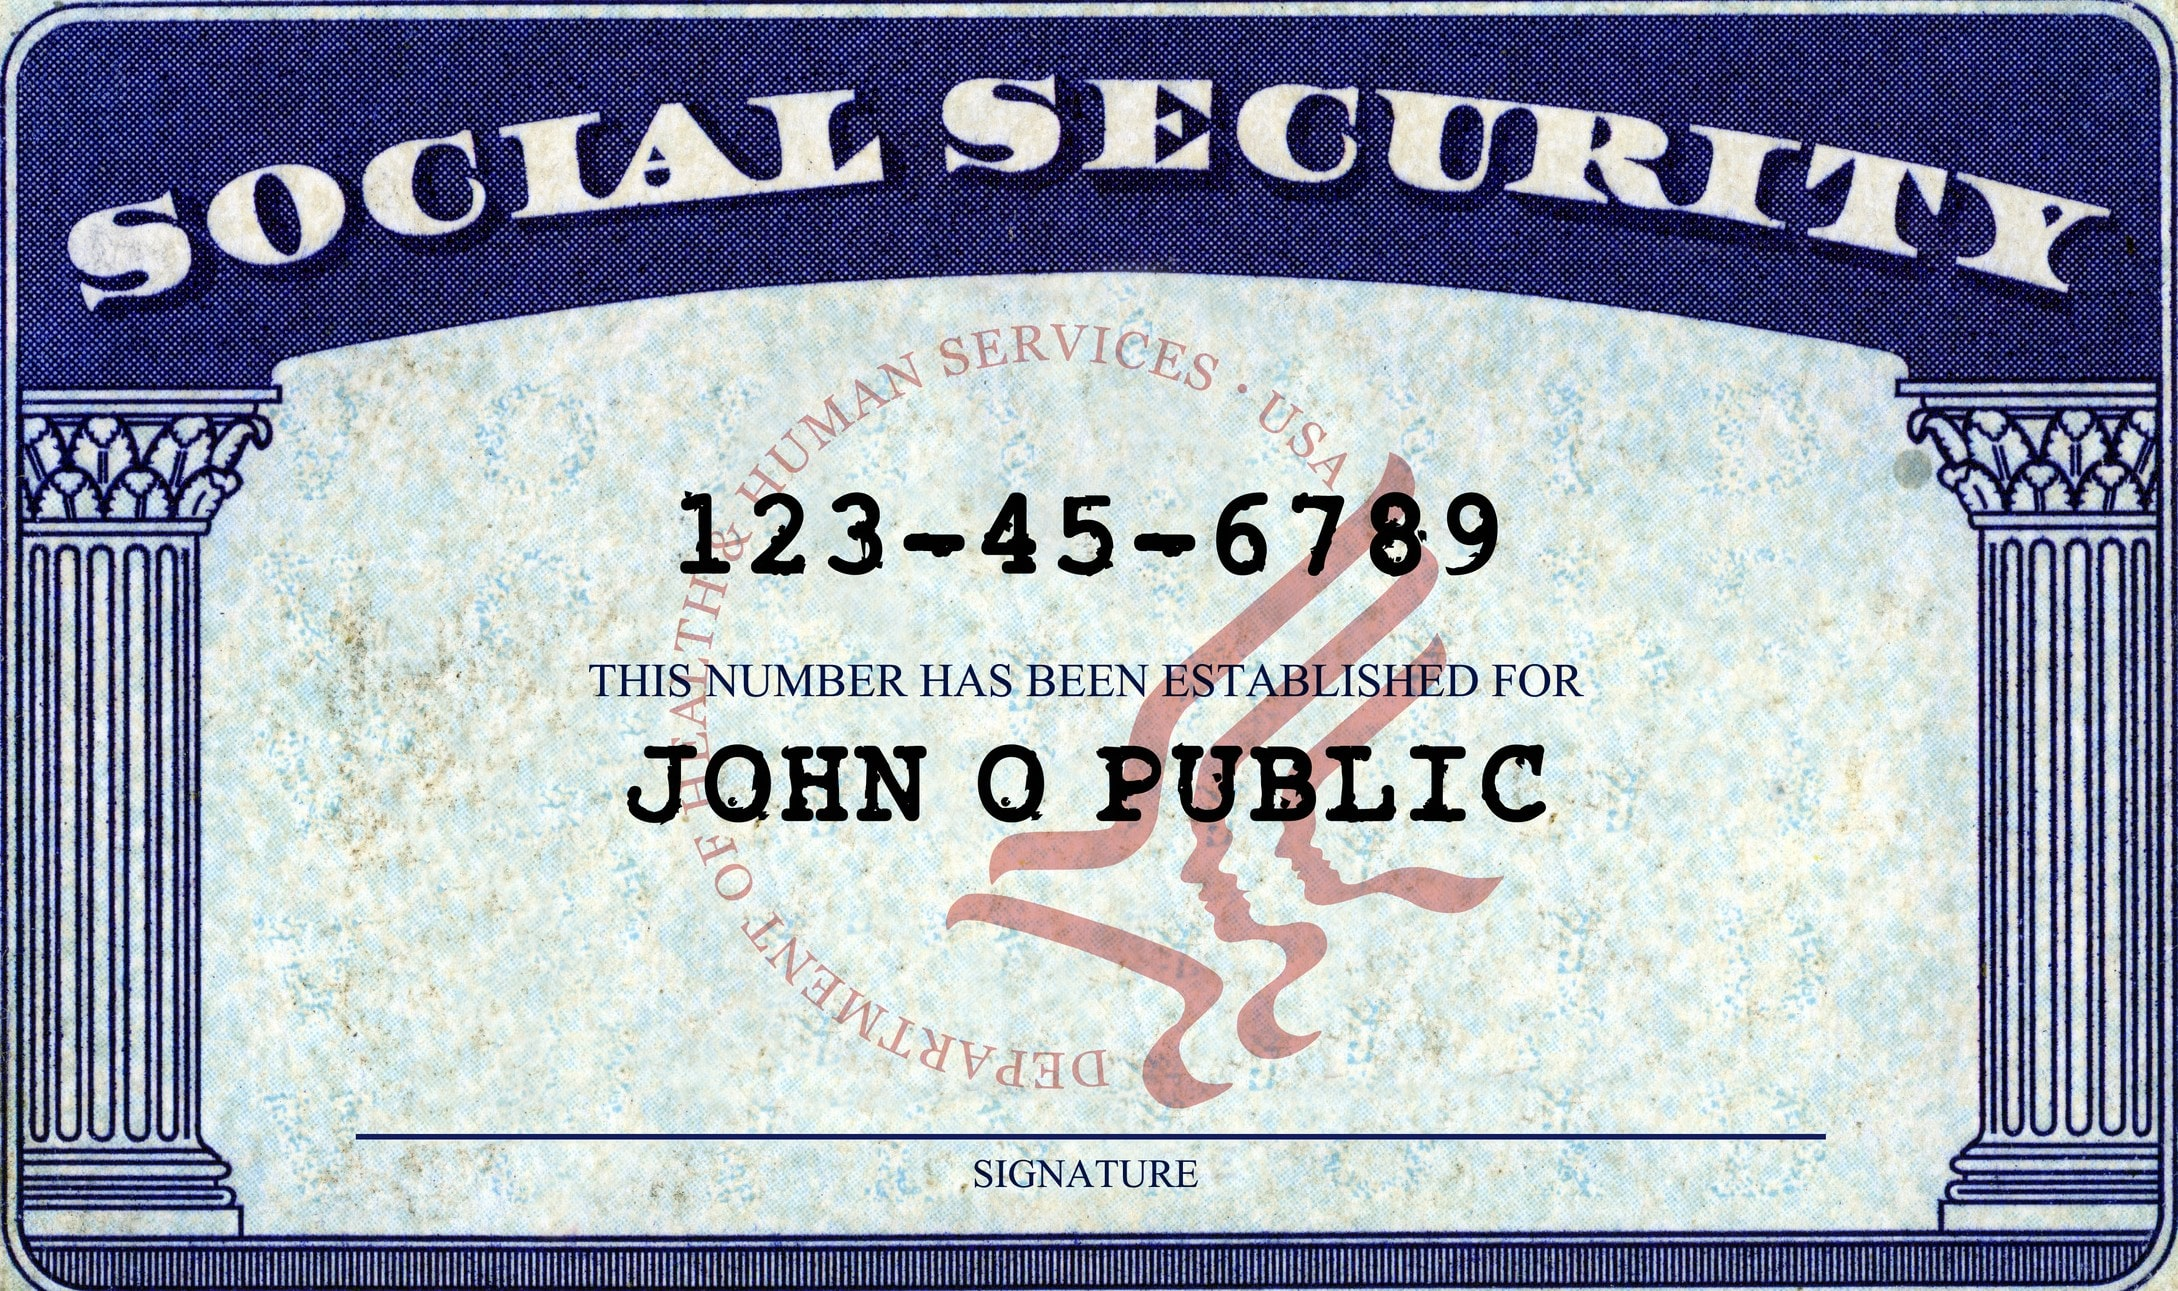 The Social Security Card Key To Your Legal Residency